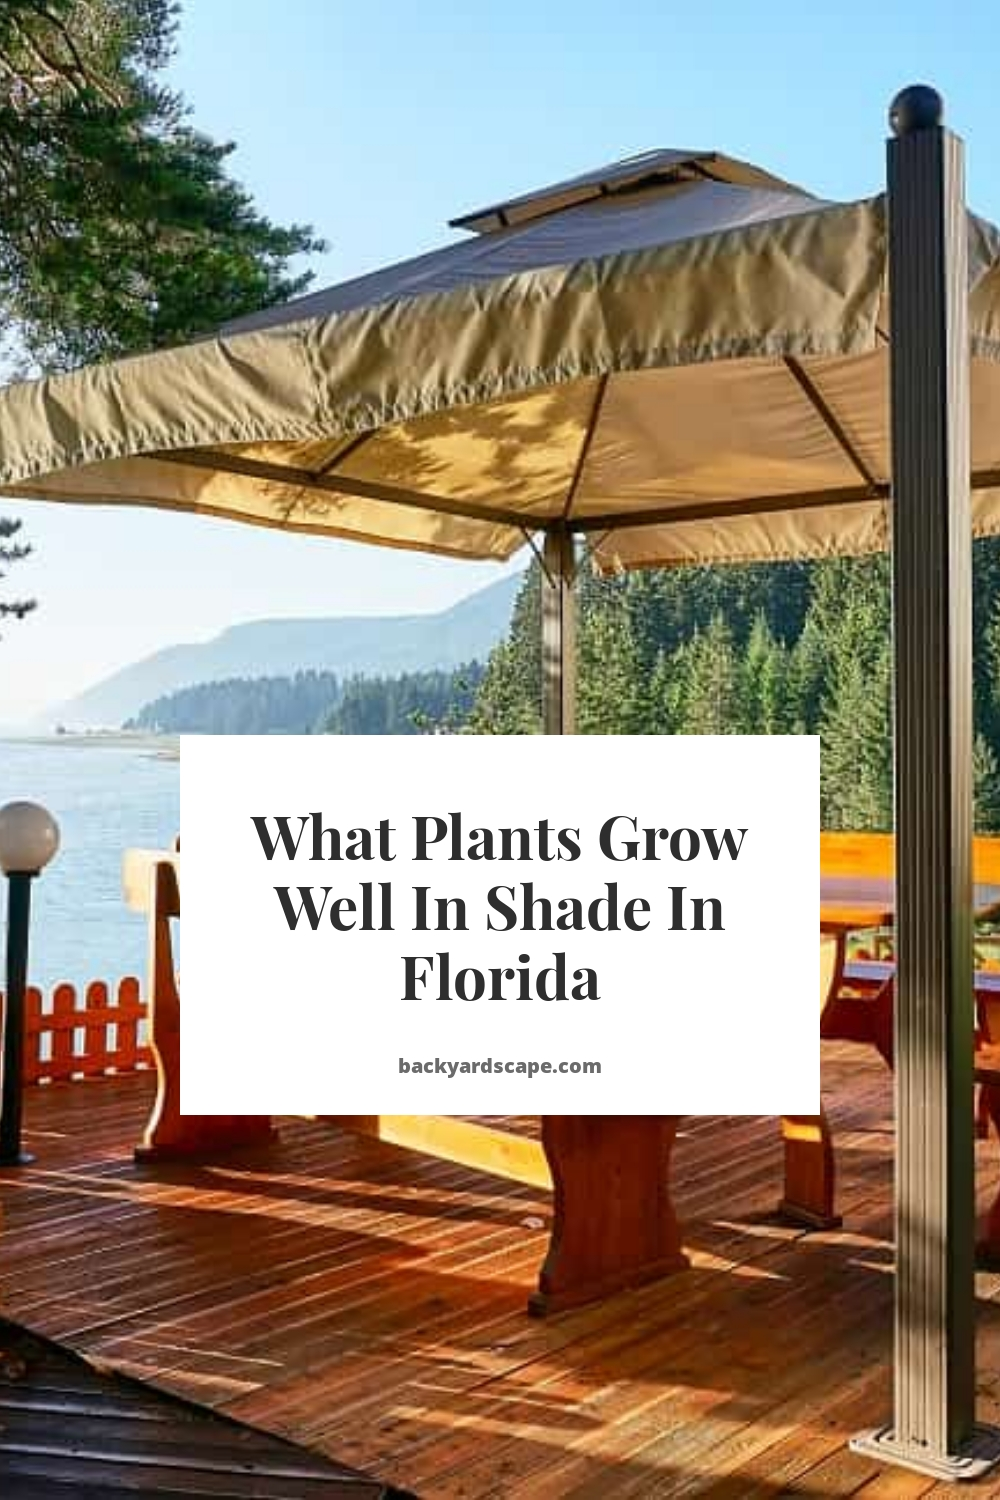 What Plants Grow Well In Shade In Florida